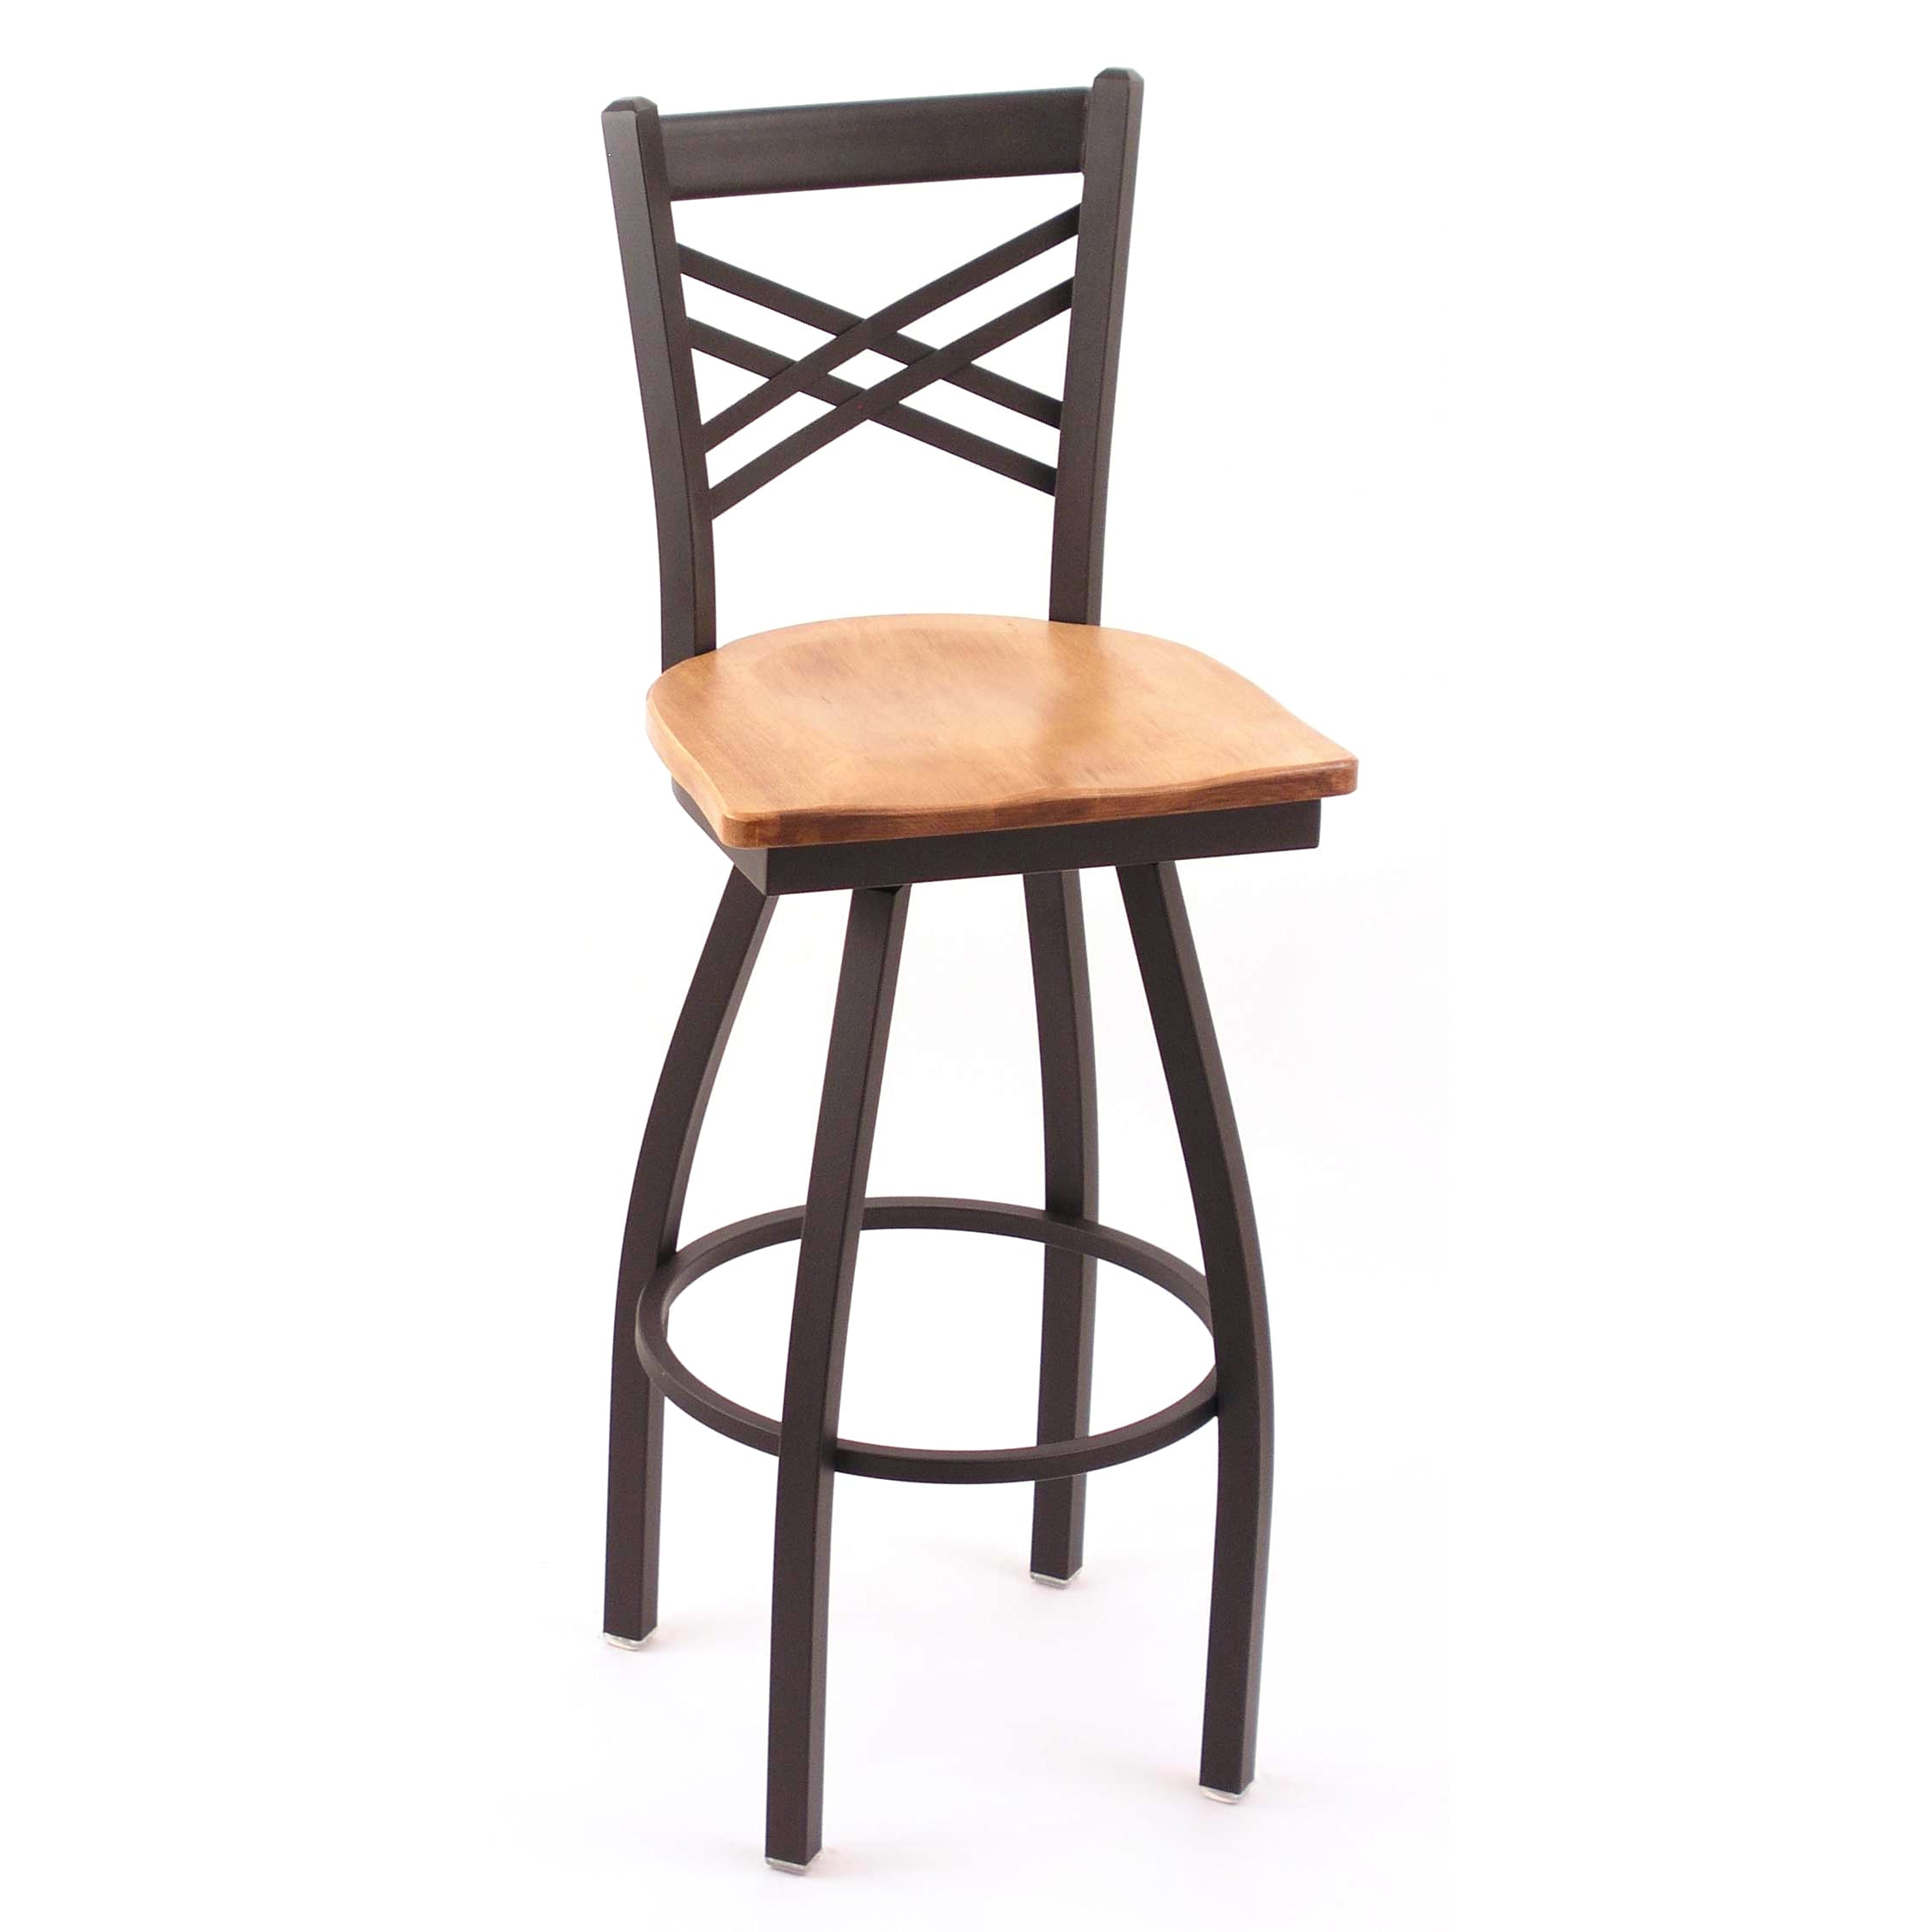 Cambridge 36-inch Maple Lattice-back Bar Stool (Extra Tal...